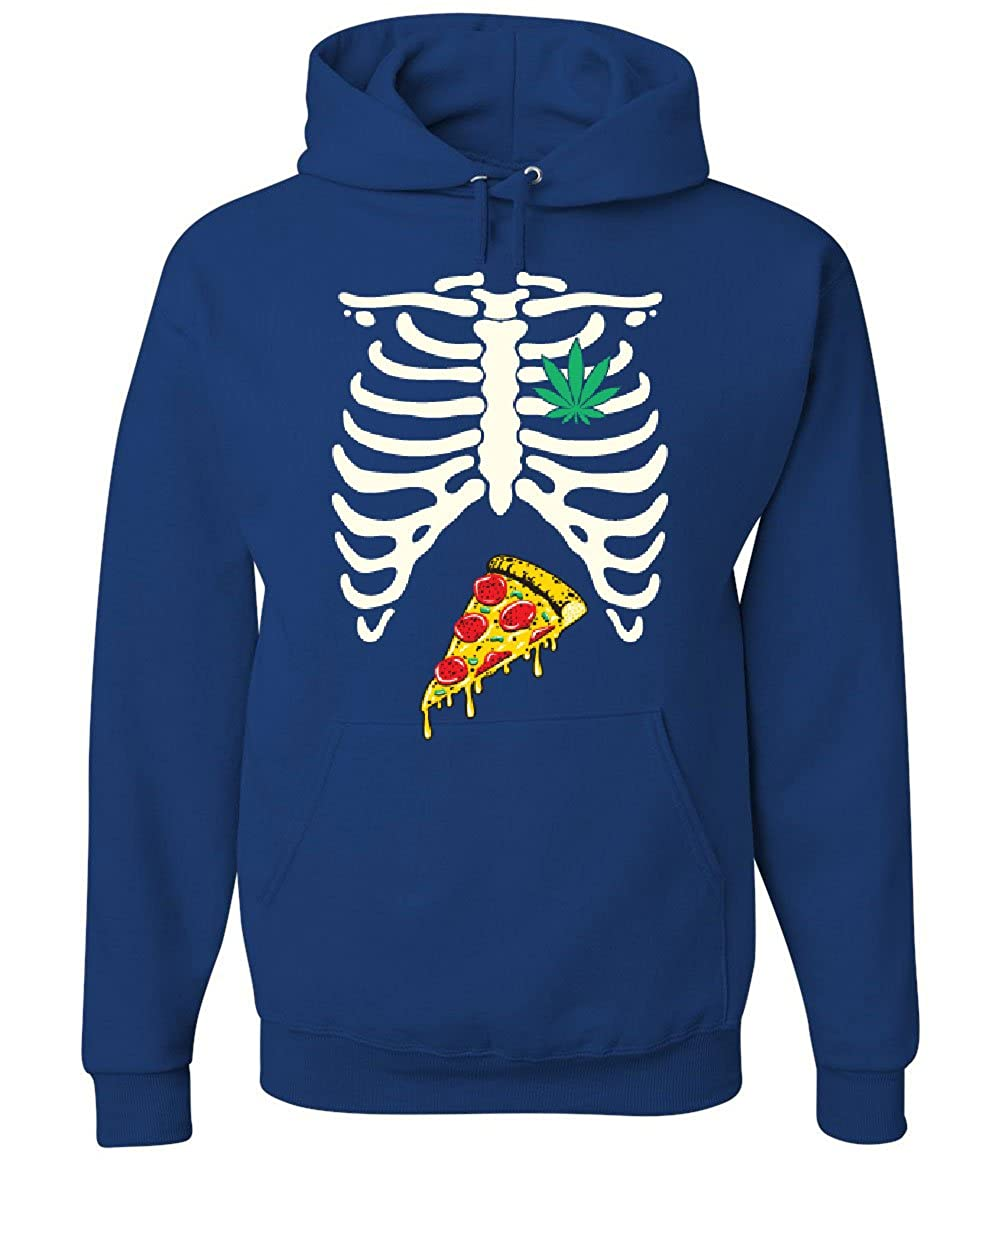 Tee Hunt Funny Skeleton Rib Cage Pizza Weed Muscle Shirt 420 Smoking